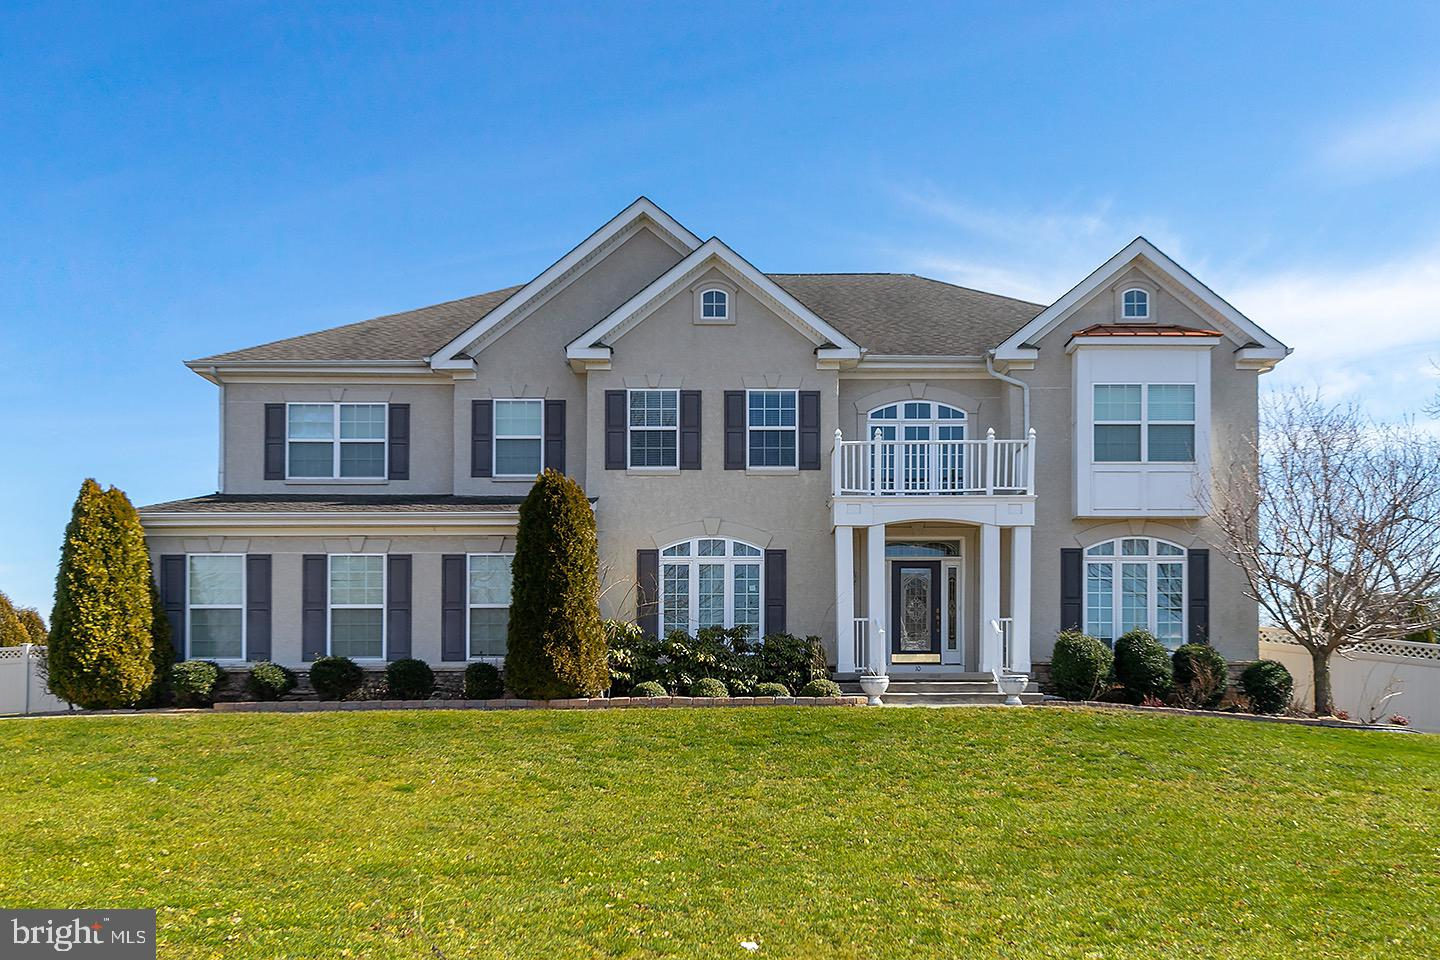 10 ALEXIS COURT, MICKLETON, NJ 08056